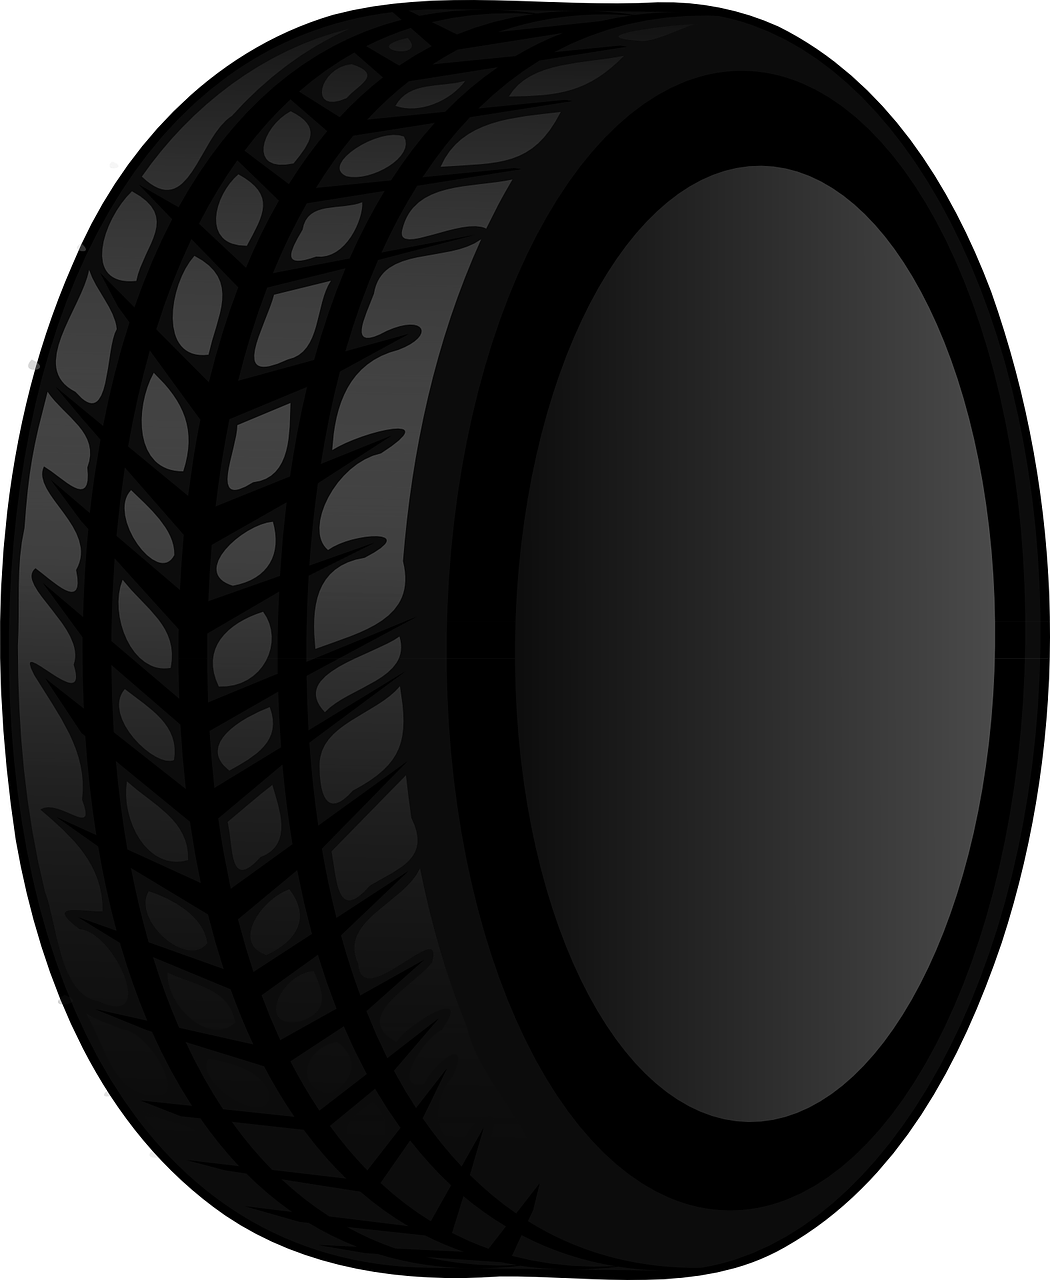 Tire clipart #15, Download drawings